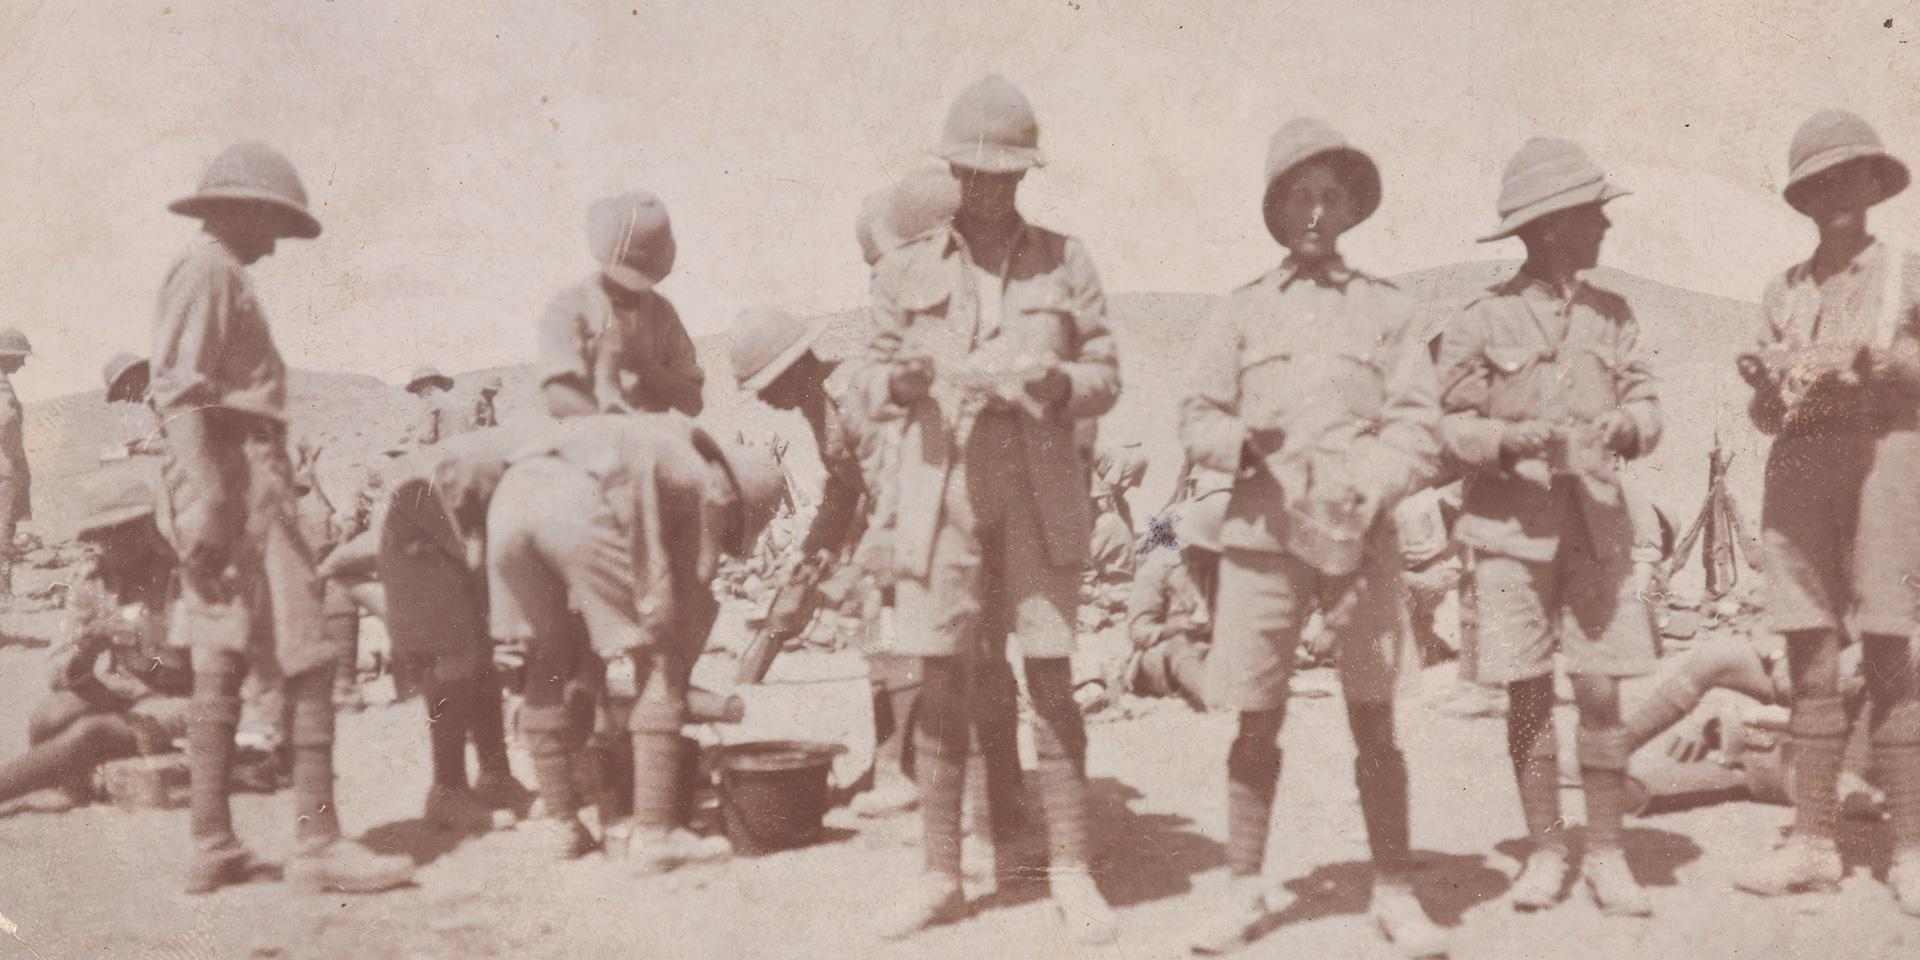 Members of 2nd Battalion The Devonshire Regiment on a meal break during service on the North West Frontier, India, c1919